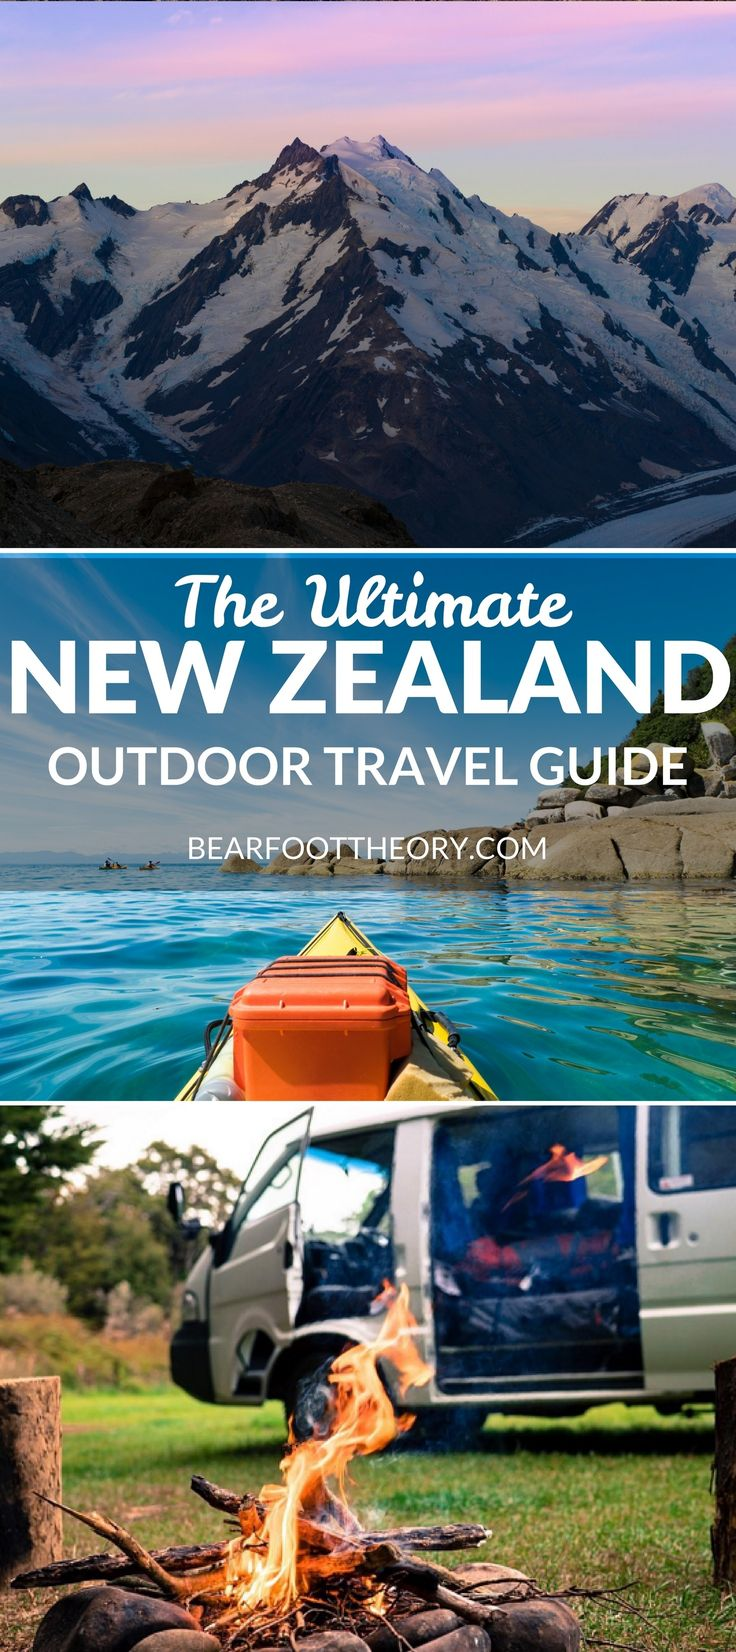 Plan an adventurous trip to New Zealand with our outdoor travel guide featuring the best outdoor activities, destinations & most popular blog posts.